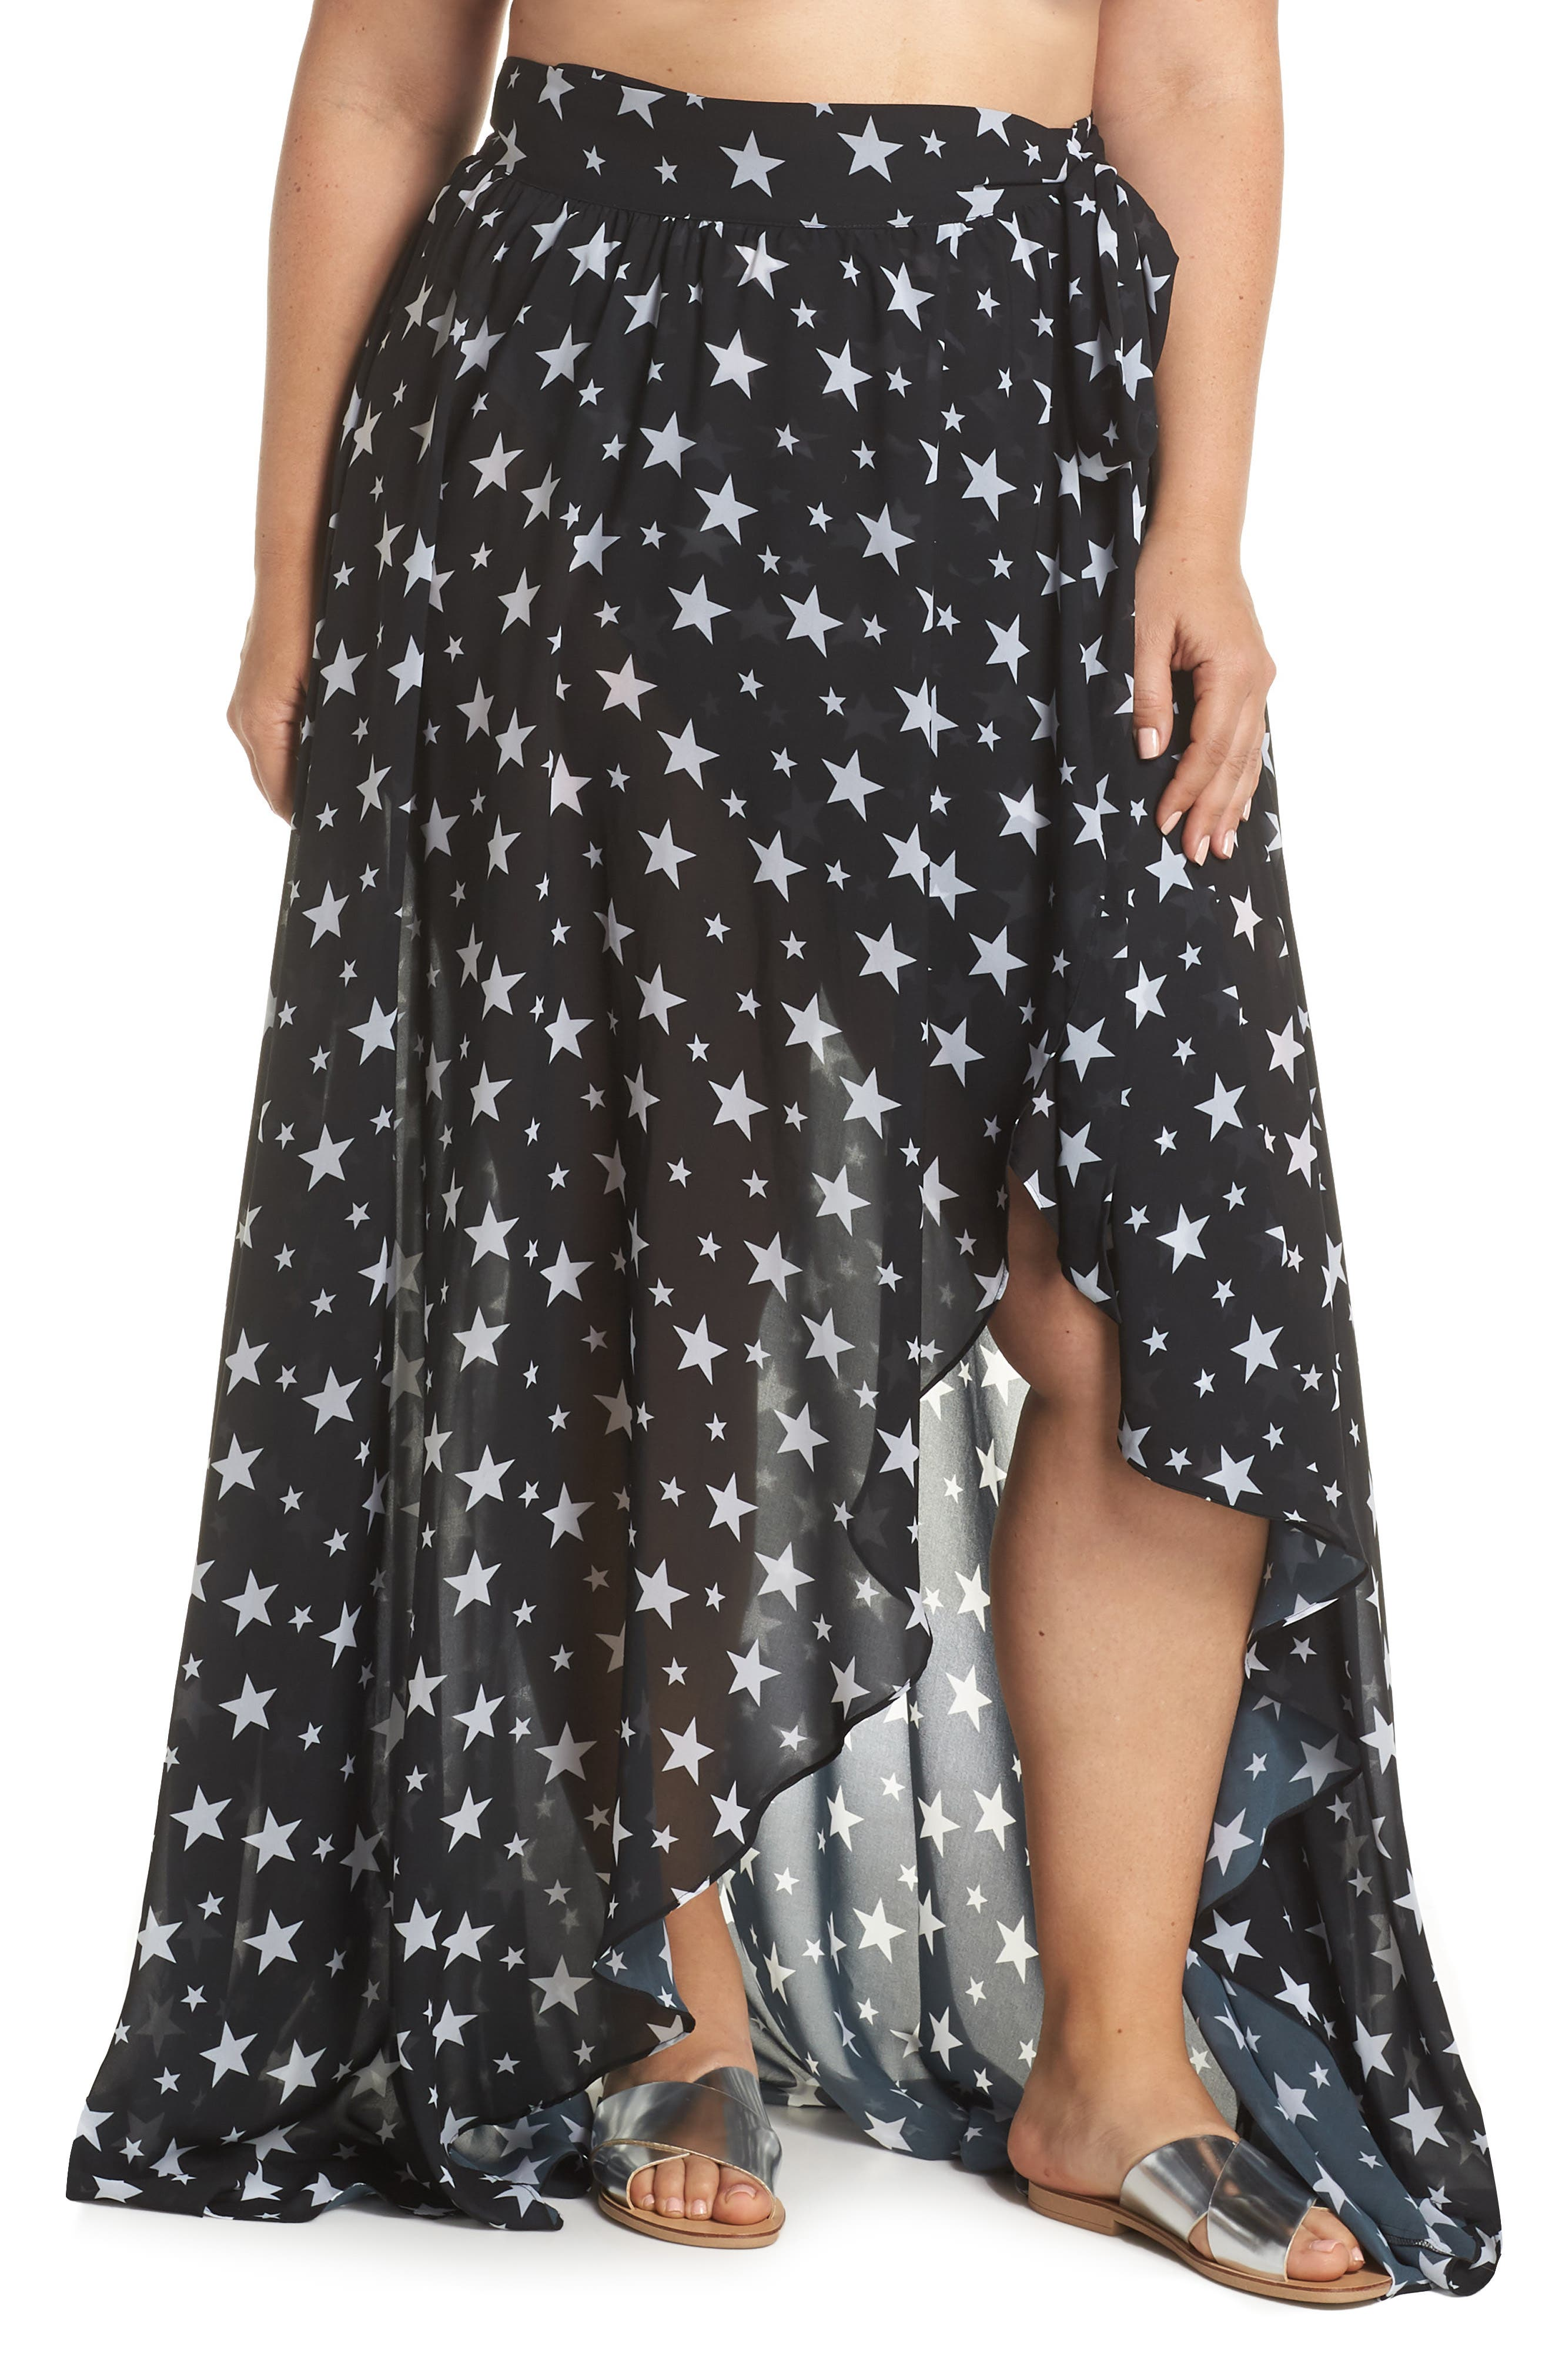 Cannes Cover-Up Skirt,                         Main,                         color, Black Star